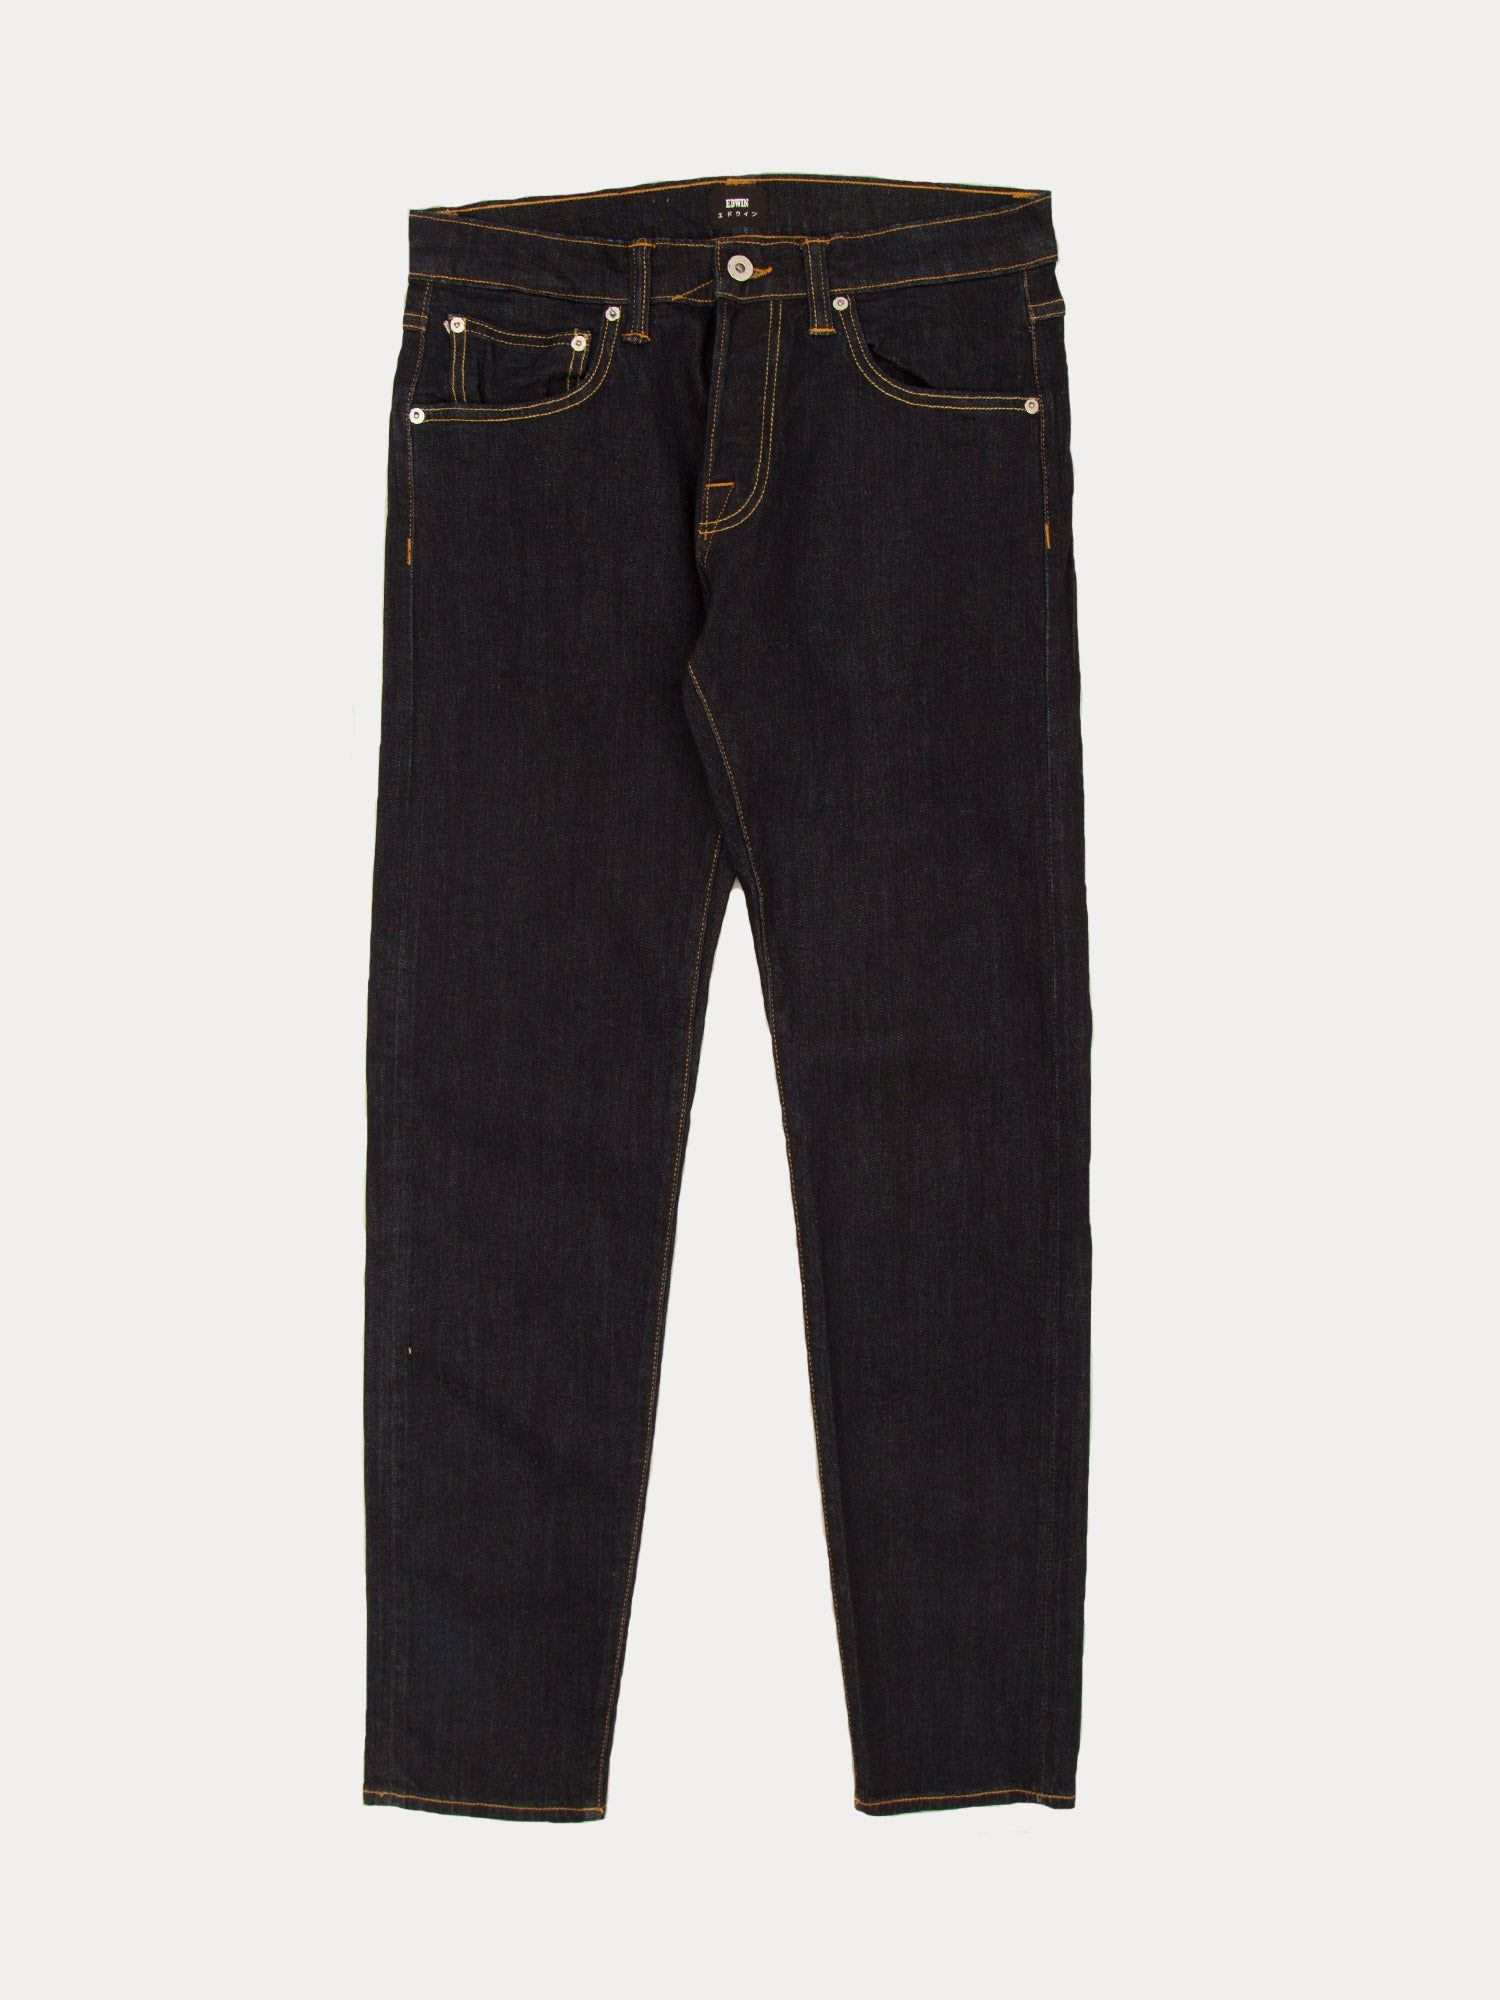 Edwin ED-55 10.5oz Red Selvage Jeans (Rinsed)